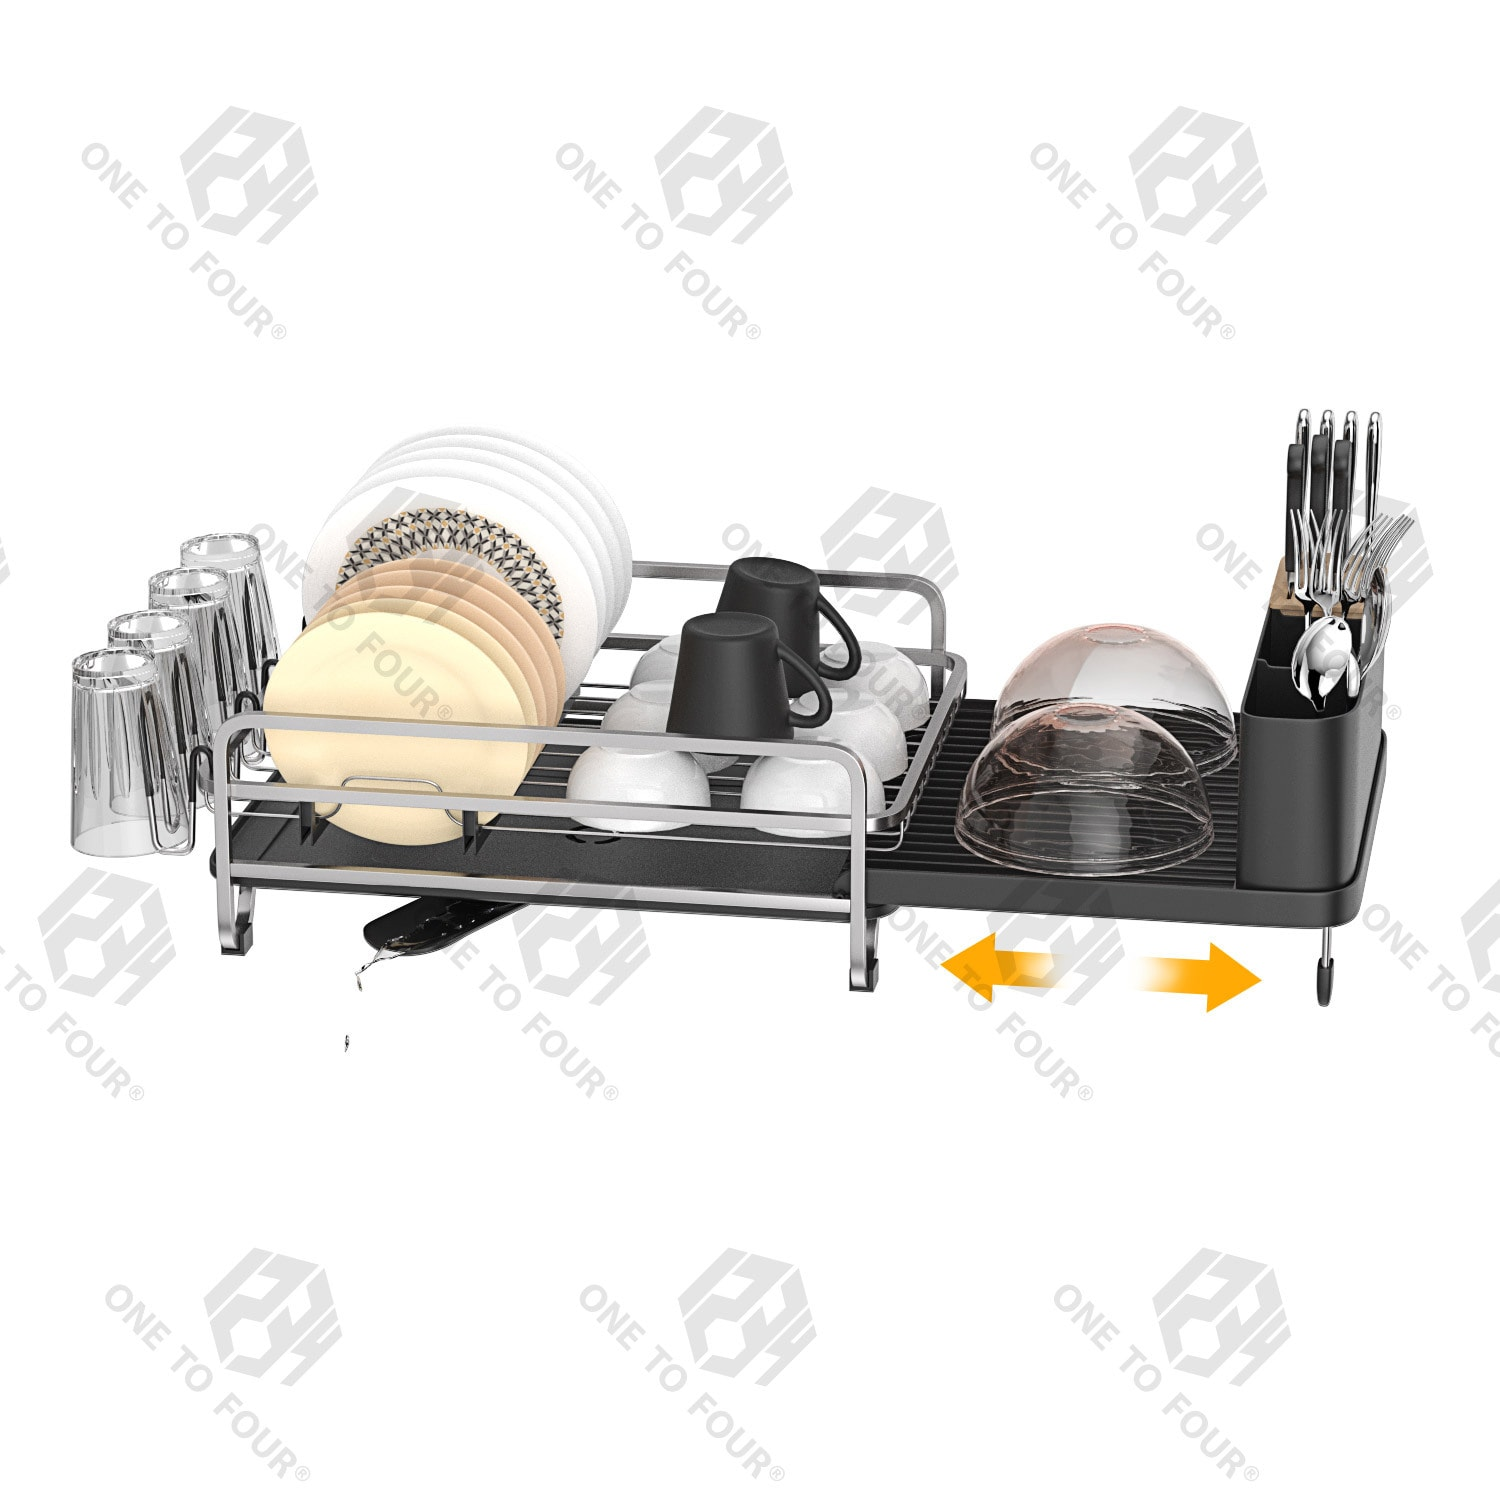 buy one to four dish rack expandable kitchen sink organiser dish drying rack and drain board set black online shop home garden on carrefour uae